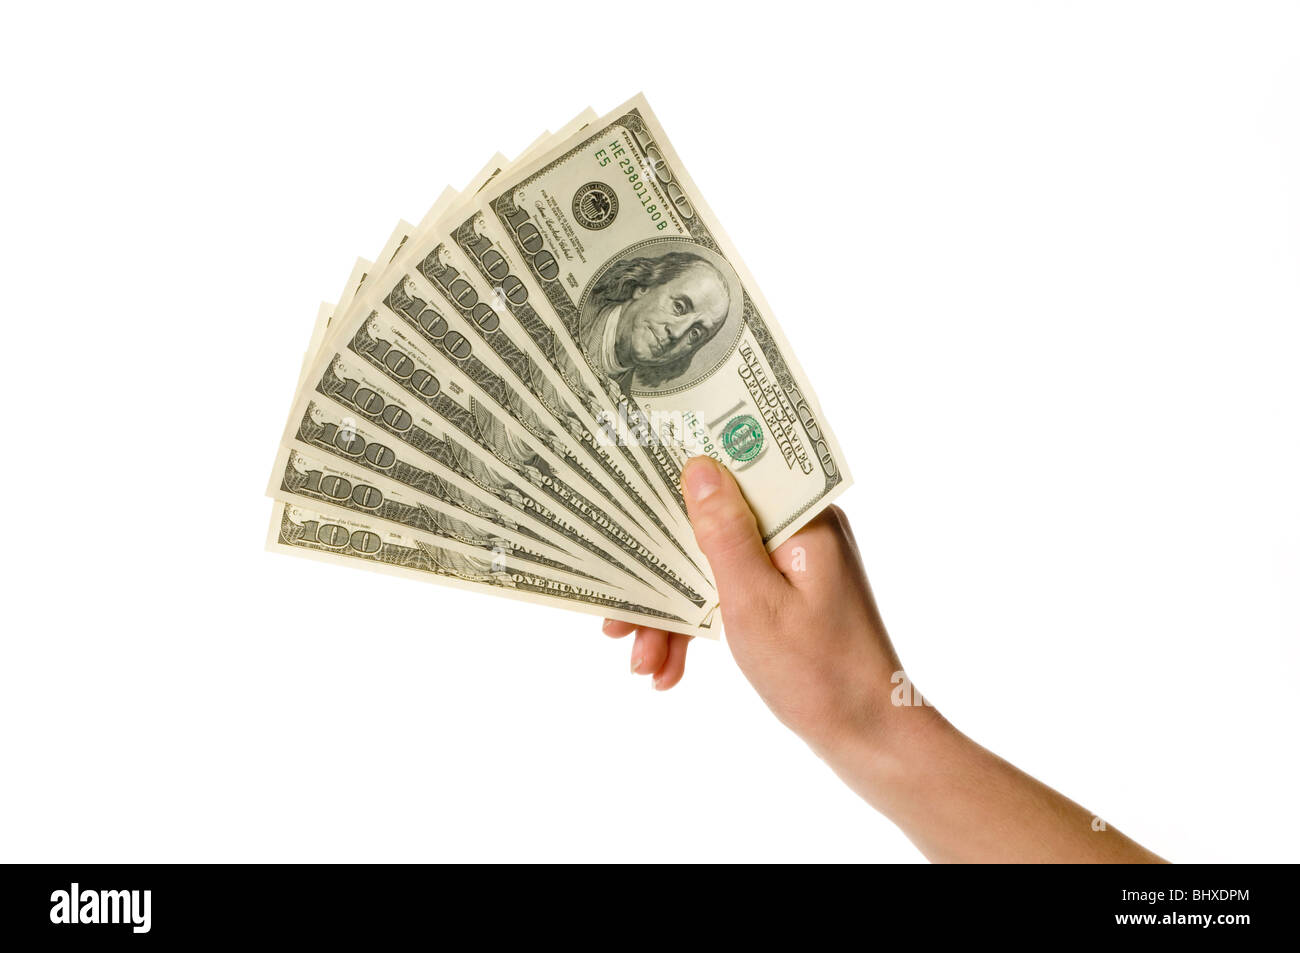 hand holding money - Stock Image